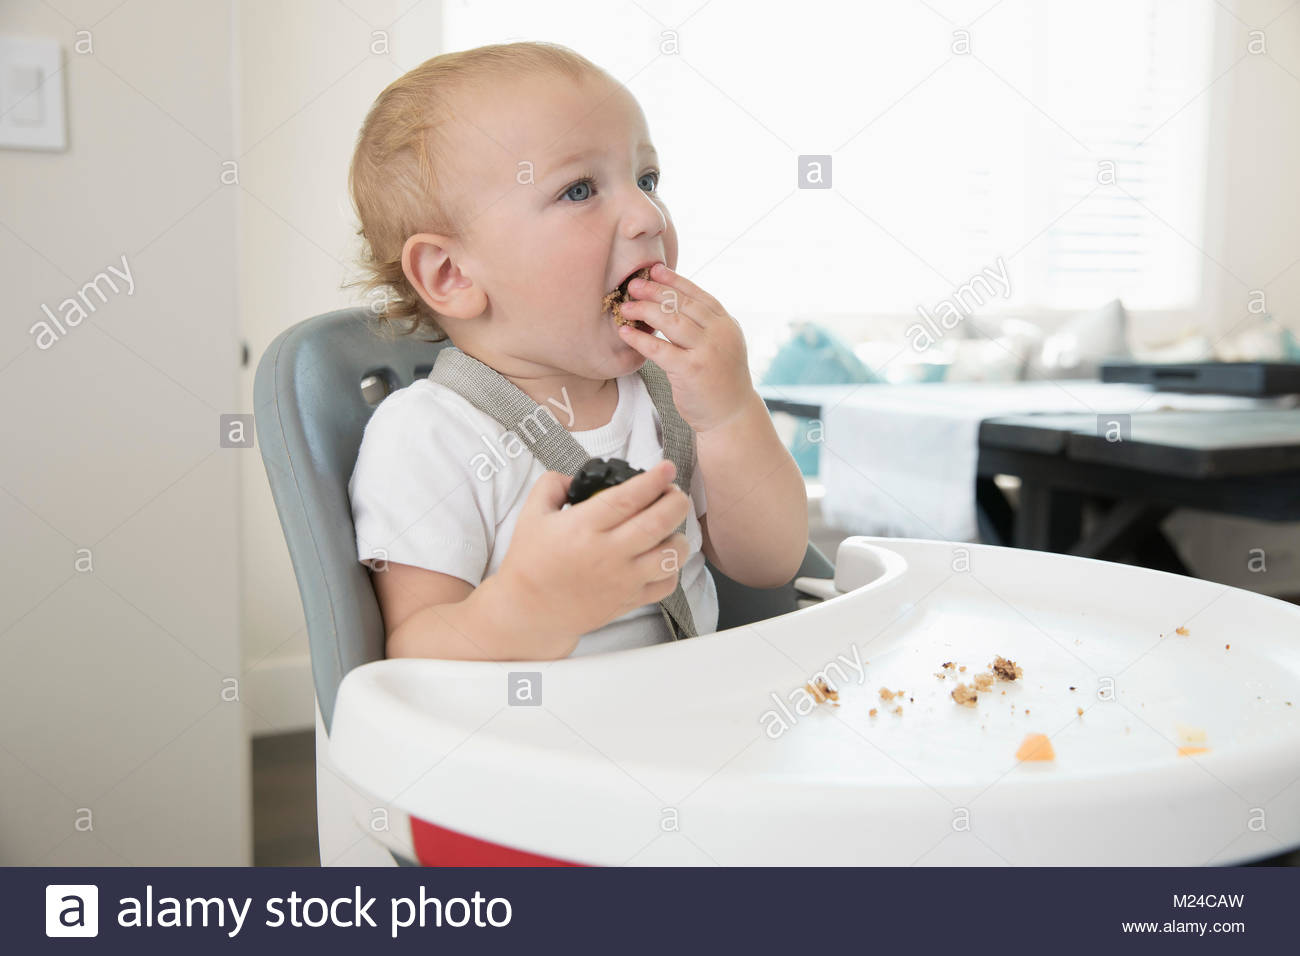 Messy baby boy eating in high chair - Stock Image